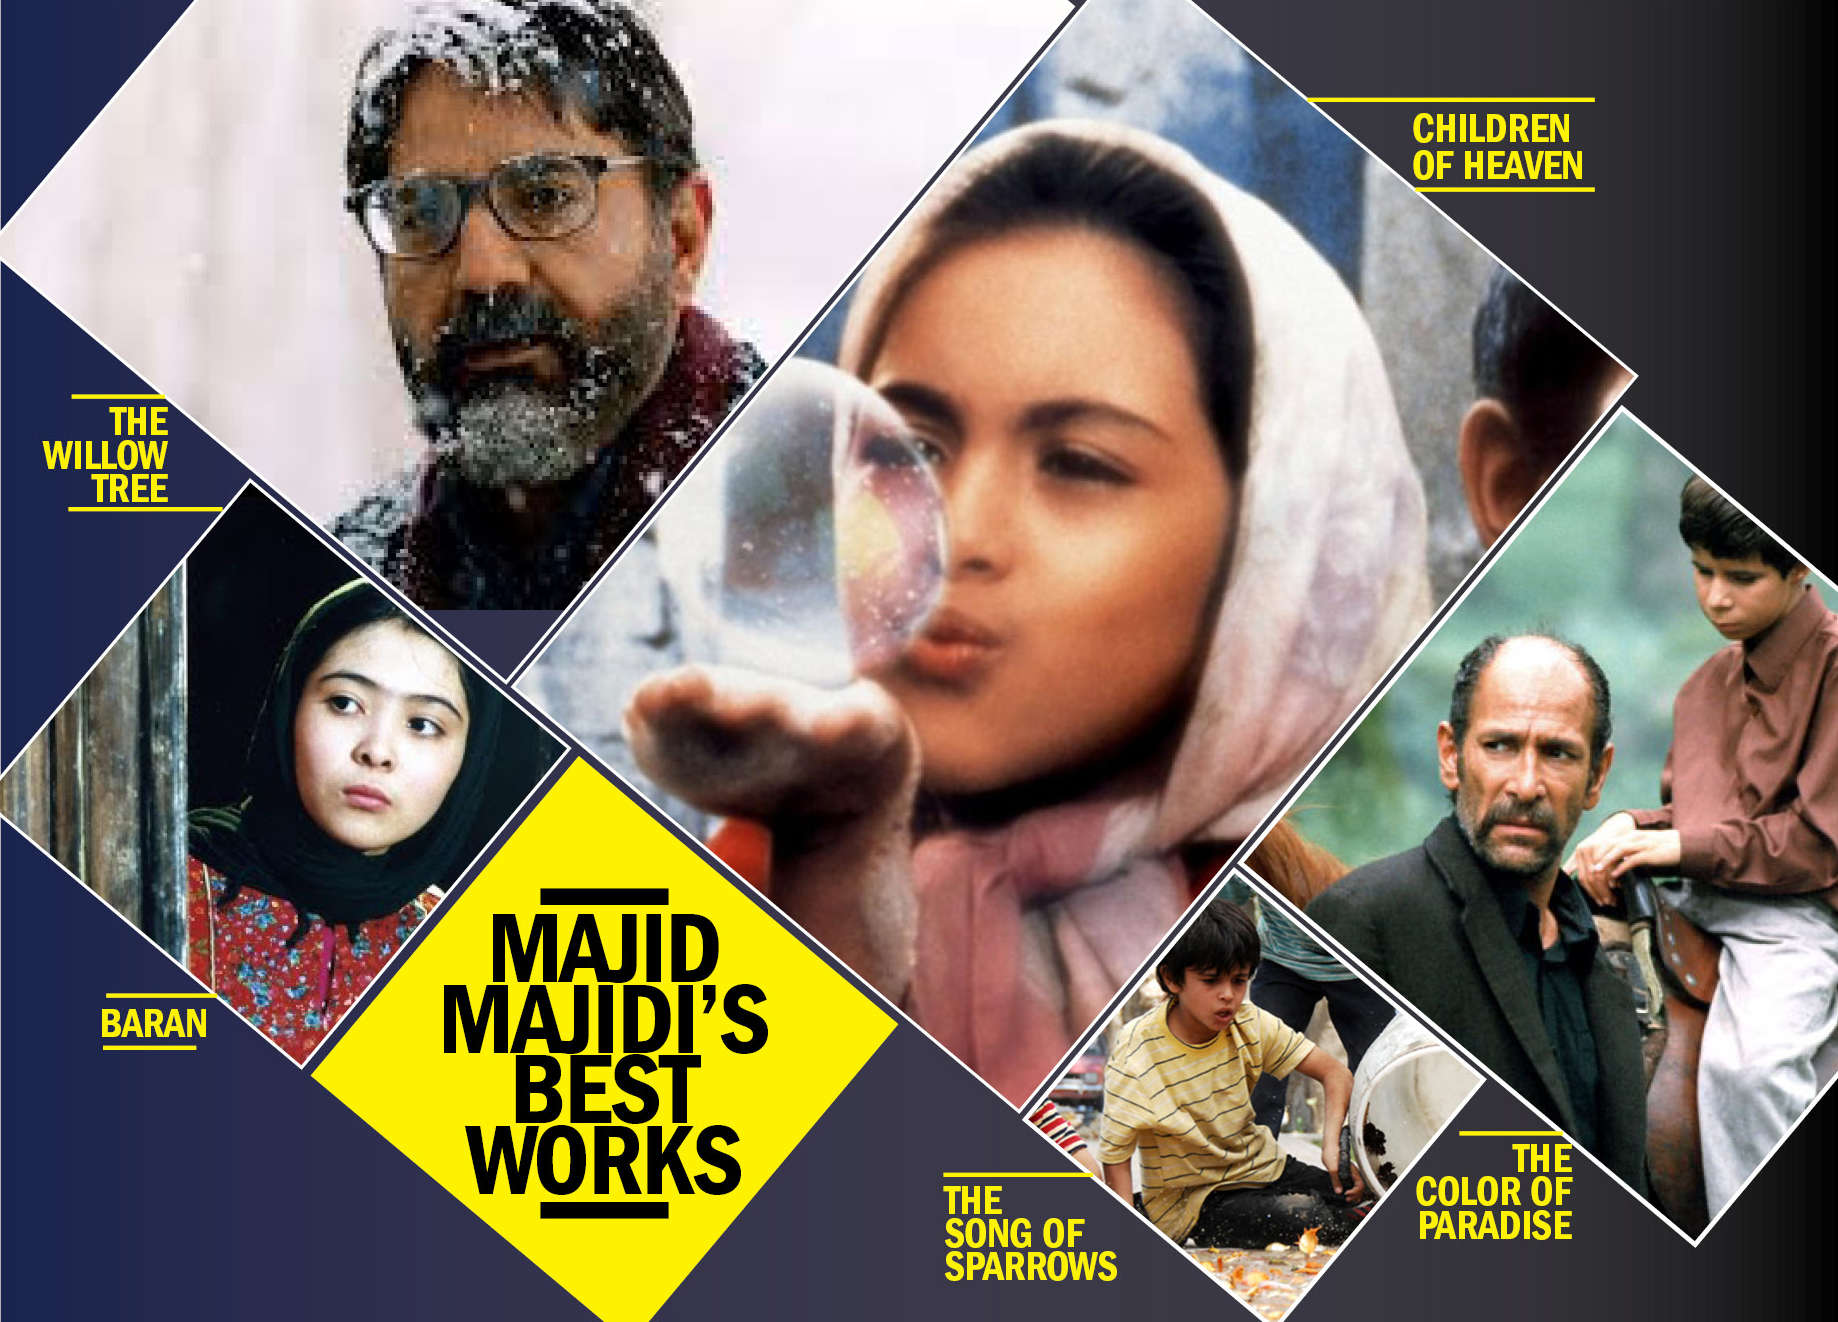 https://www.filmfare.com/interviews/exclusive-majid-majidi-talks-about-the-challenges-he-faced-while-making-beyond-the-clouds-27682.html